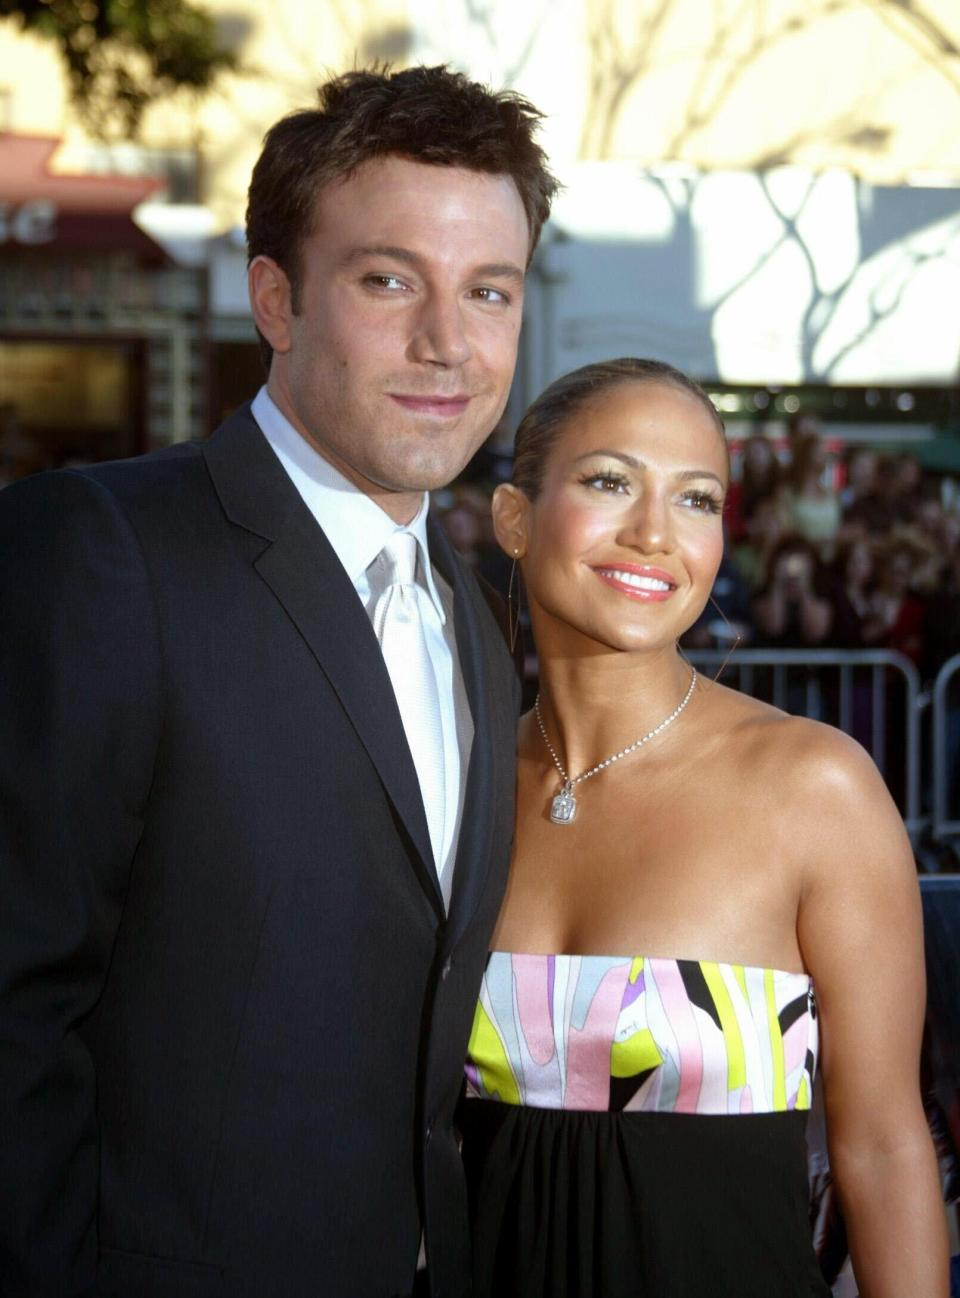 """Jennifer Lopez and Ben Affleck arrive on Feb. 9, 2003, for the premiere of the film """"Daredevil"""" at the Mann Village Theater in Los Angeles. - Credit: Hubert Boesl/picture-alliance/dpa/AP Images"""